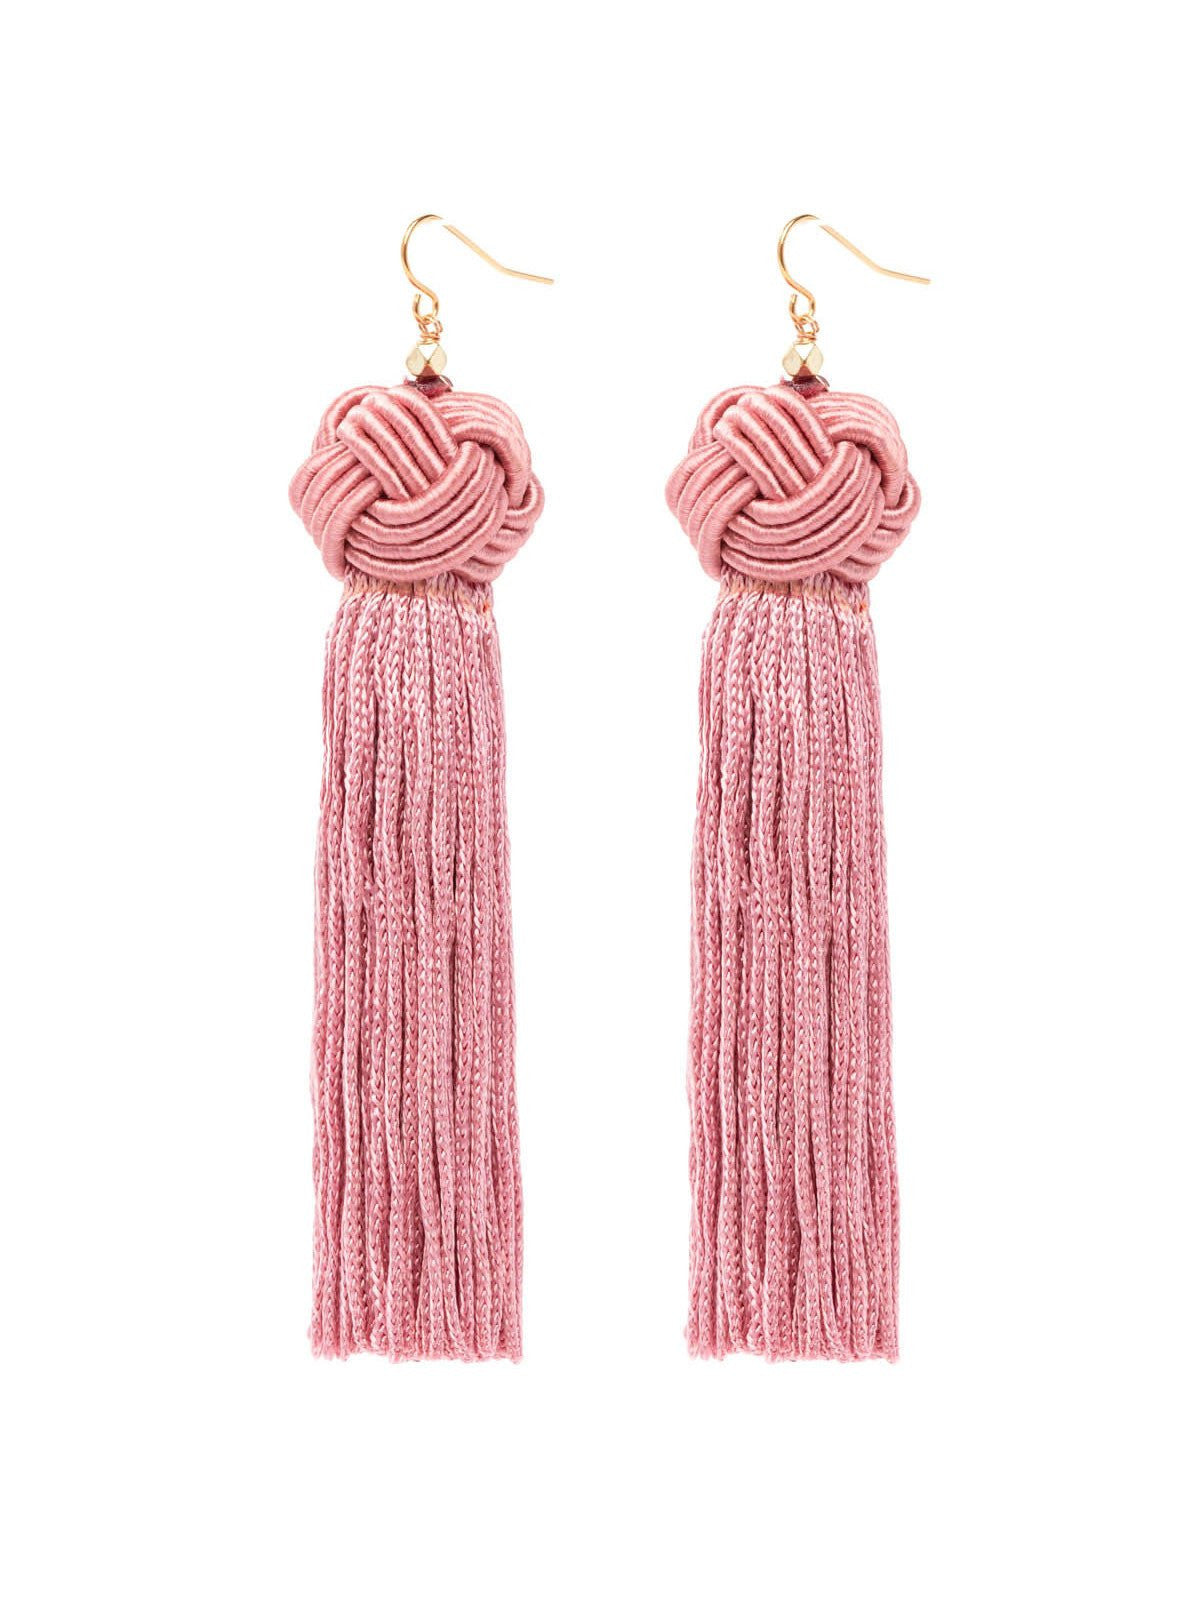 Women outfit in a earrings rental from Vanessa Mooney called The Astrid Knotted Tassel Earrings